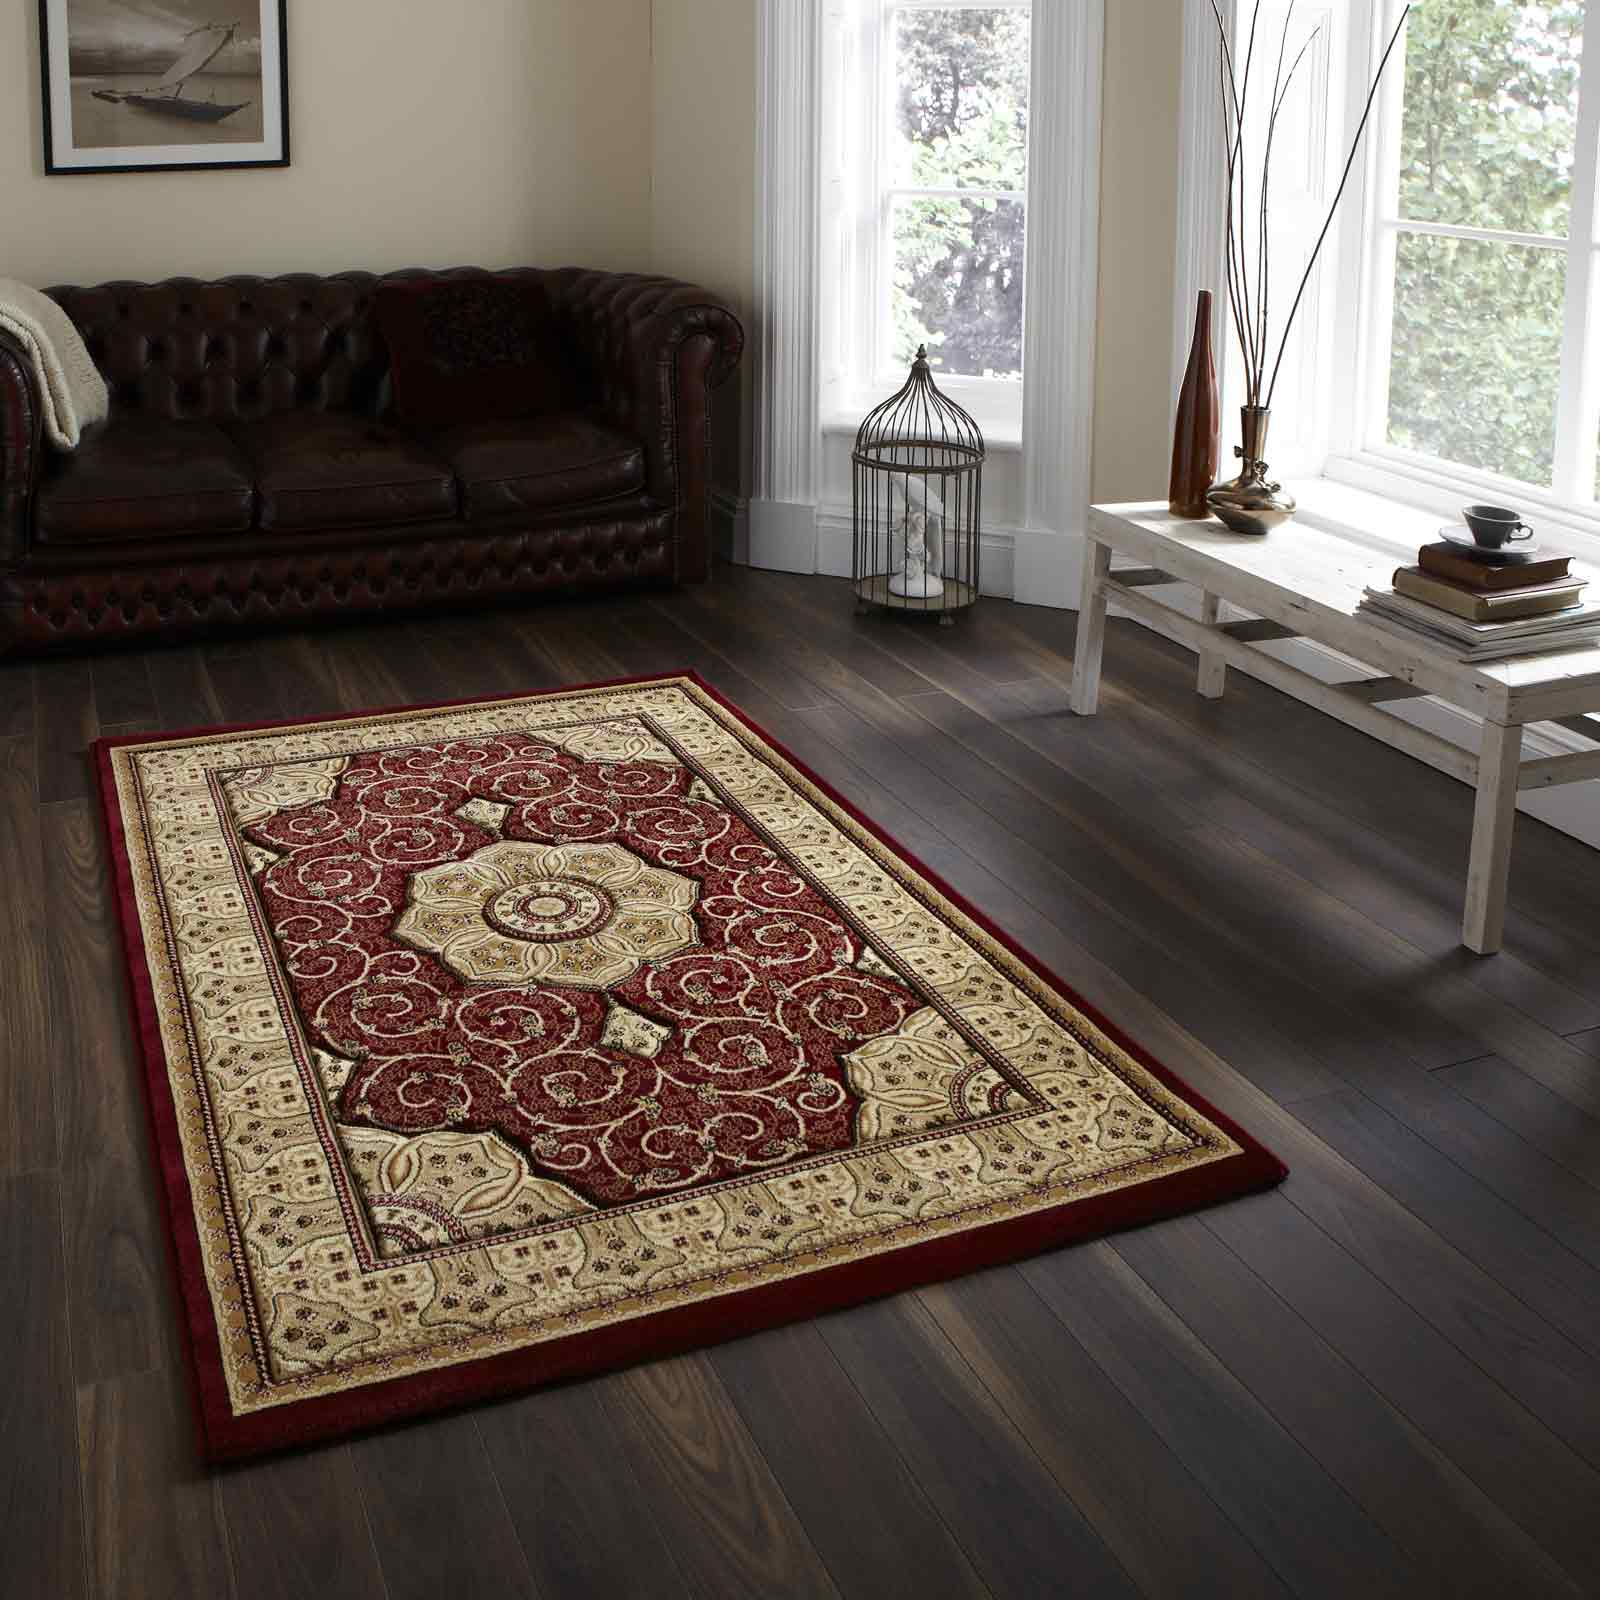 red and gold kilim rug on dark wood floor in lving room with a leather couch